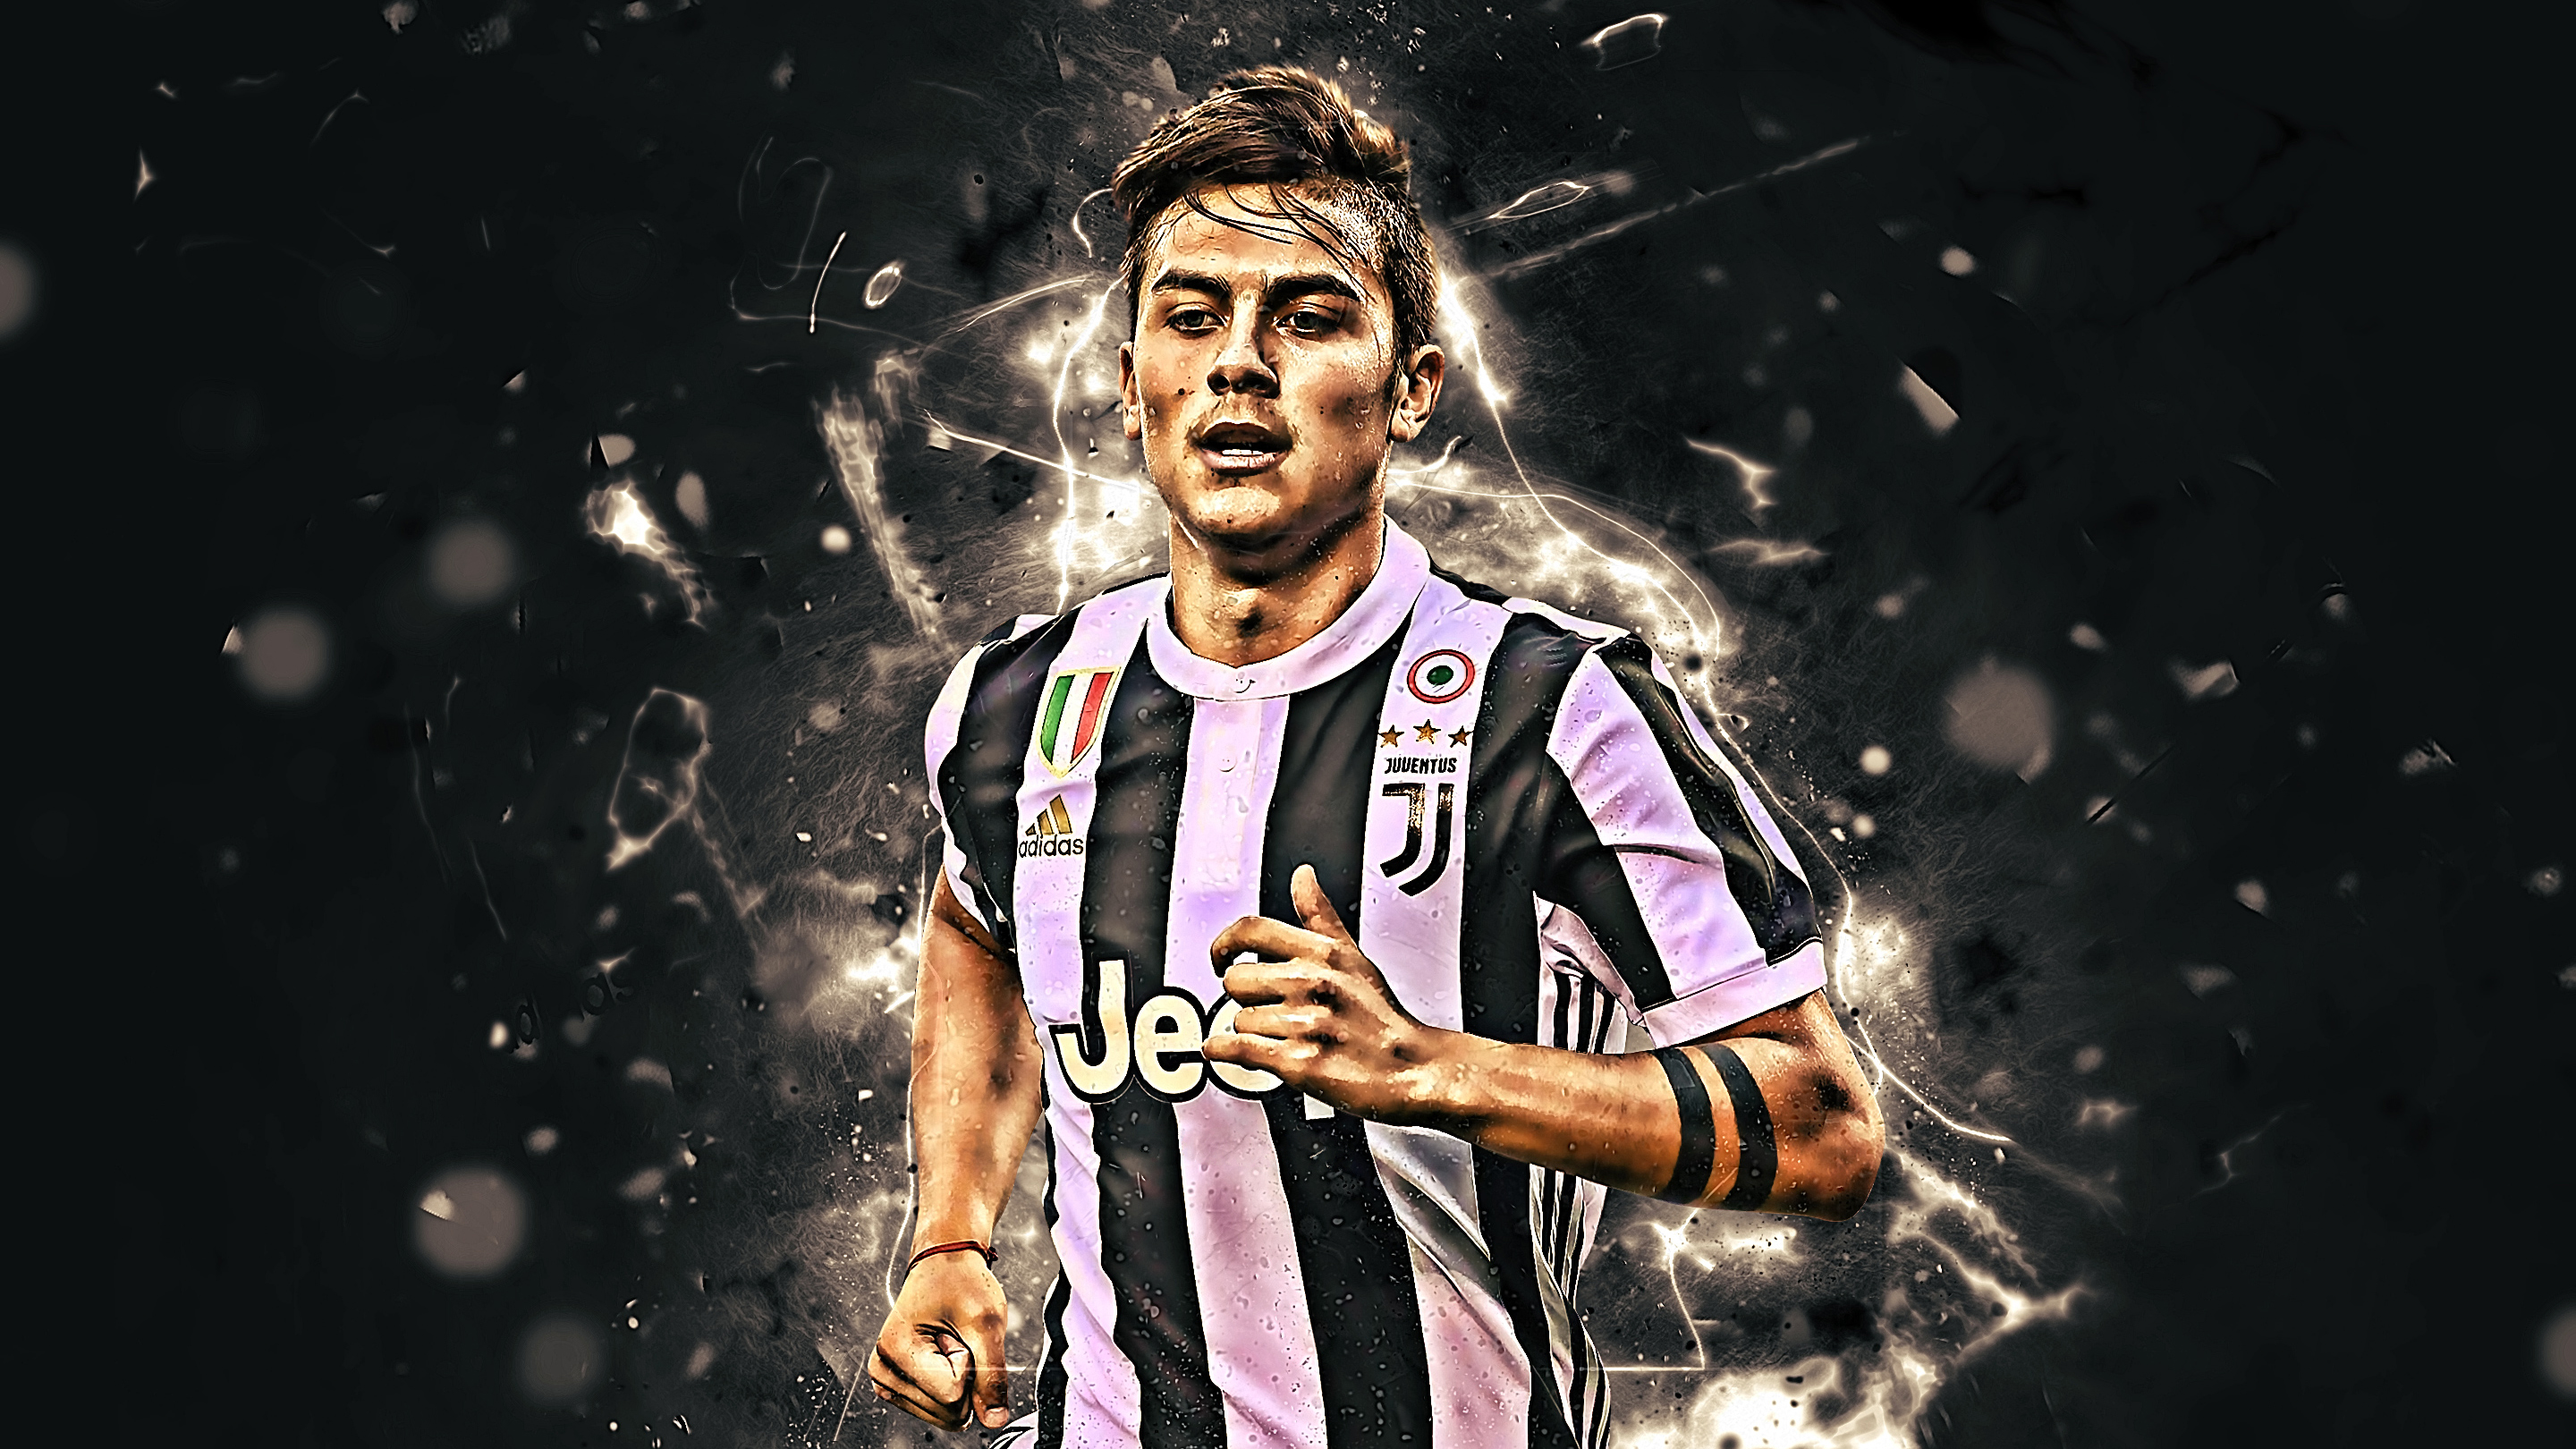 Paulo Dybala Argentine Football Player Wallpapers